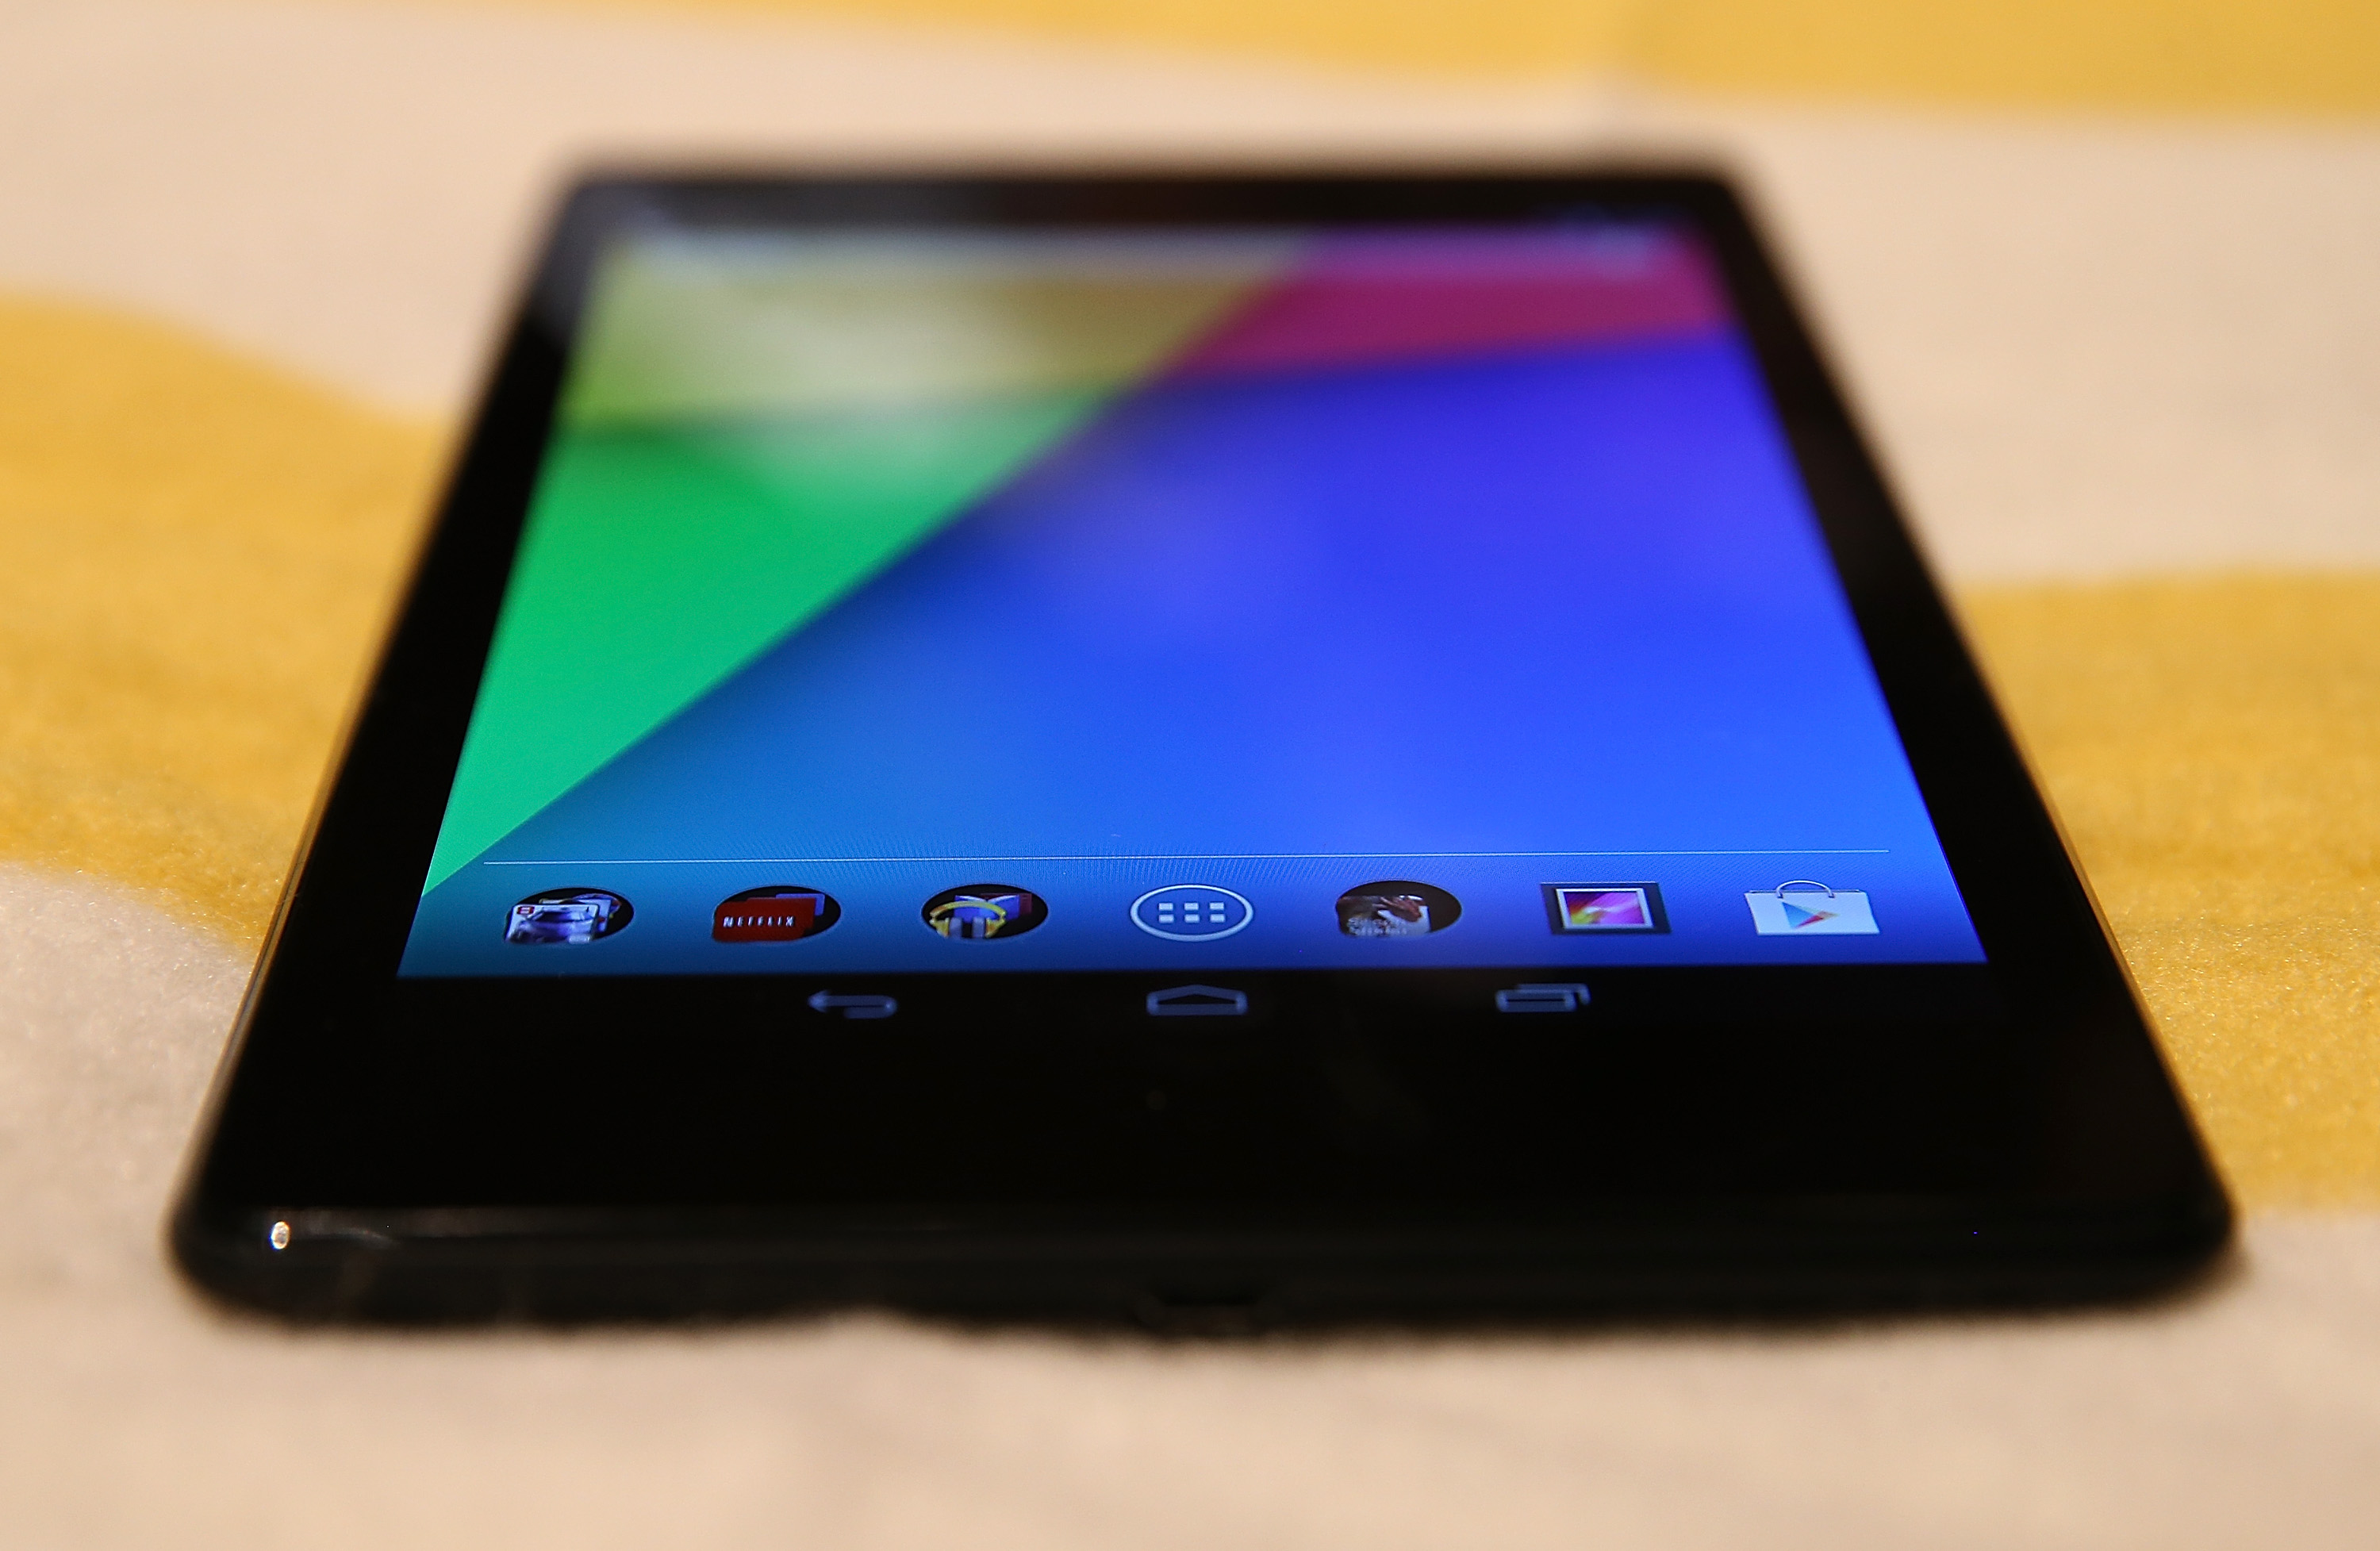 The new Google Nexus 7 tablet, made by Asus is displayed during a Google special event at Dogpatch Studios on July 24, 2013 in San Francisco, California.